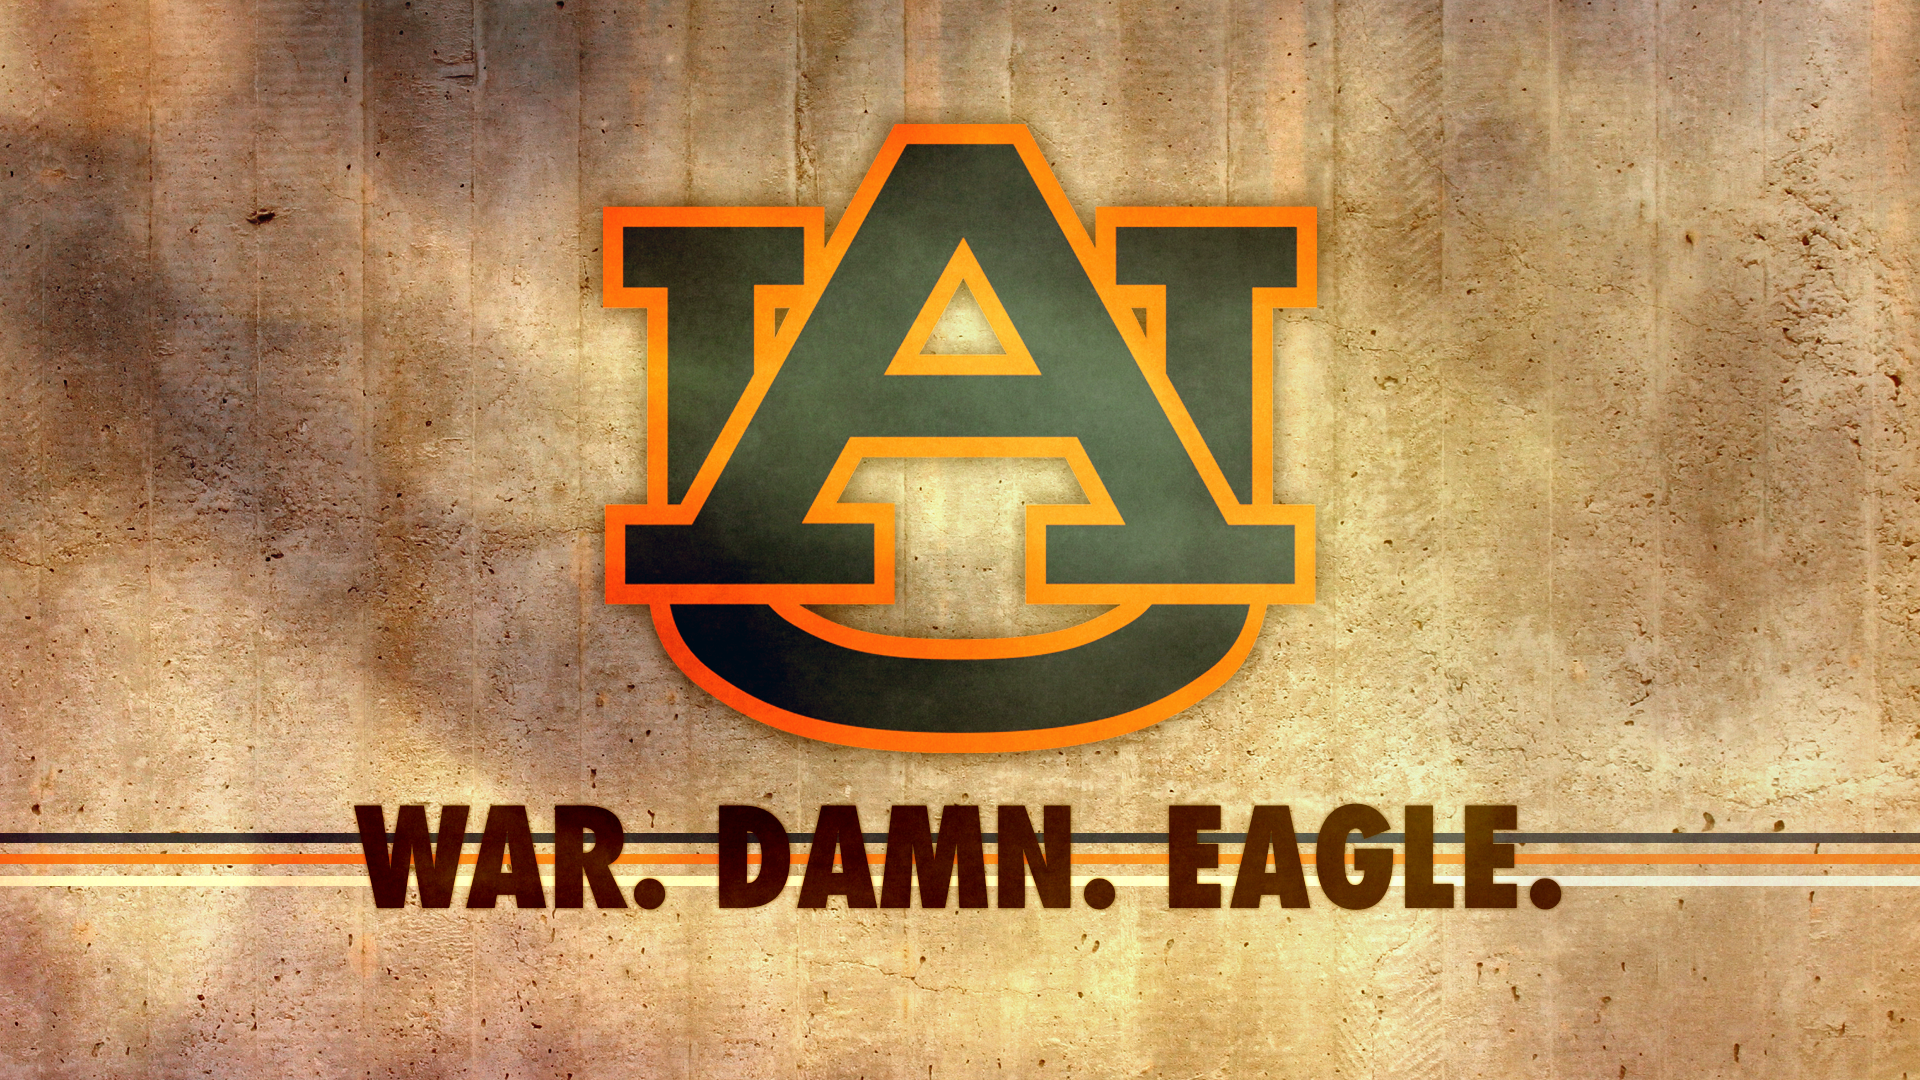 Pin by melanie harris on war damn eagle pinterest search results for auburn football 2013 wallpaper adorable wallpapers voltagebd